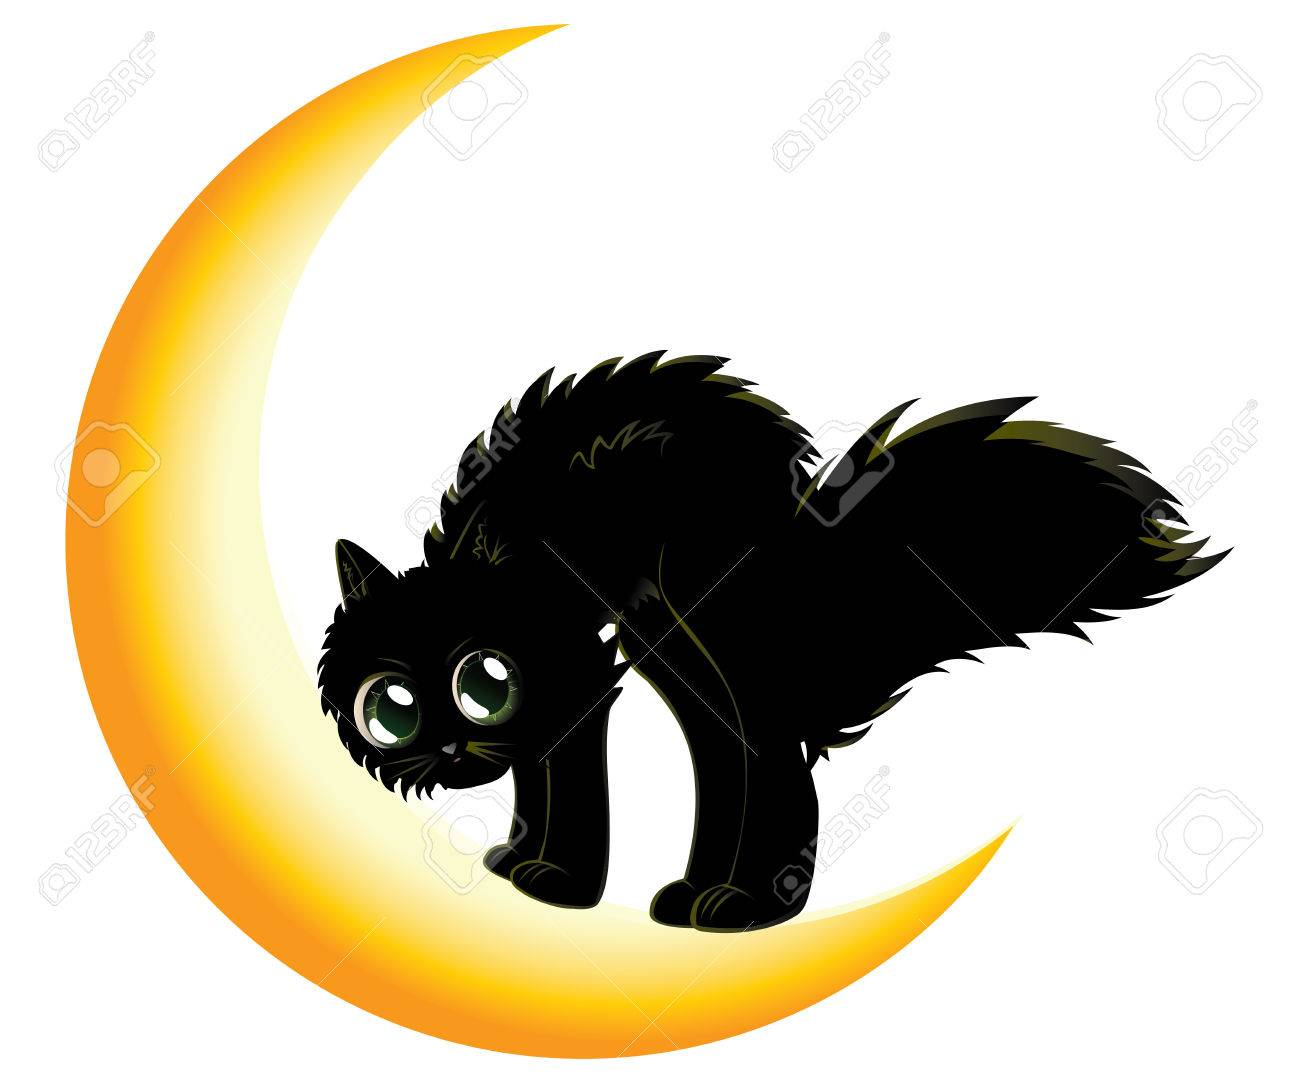 1300x1083 Cute Cartoon Black Kitten On Crescent Moon. Royalty Free Cliparts